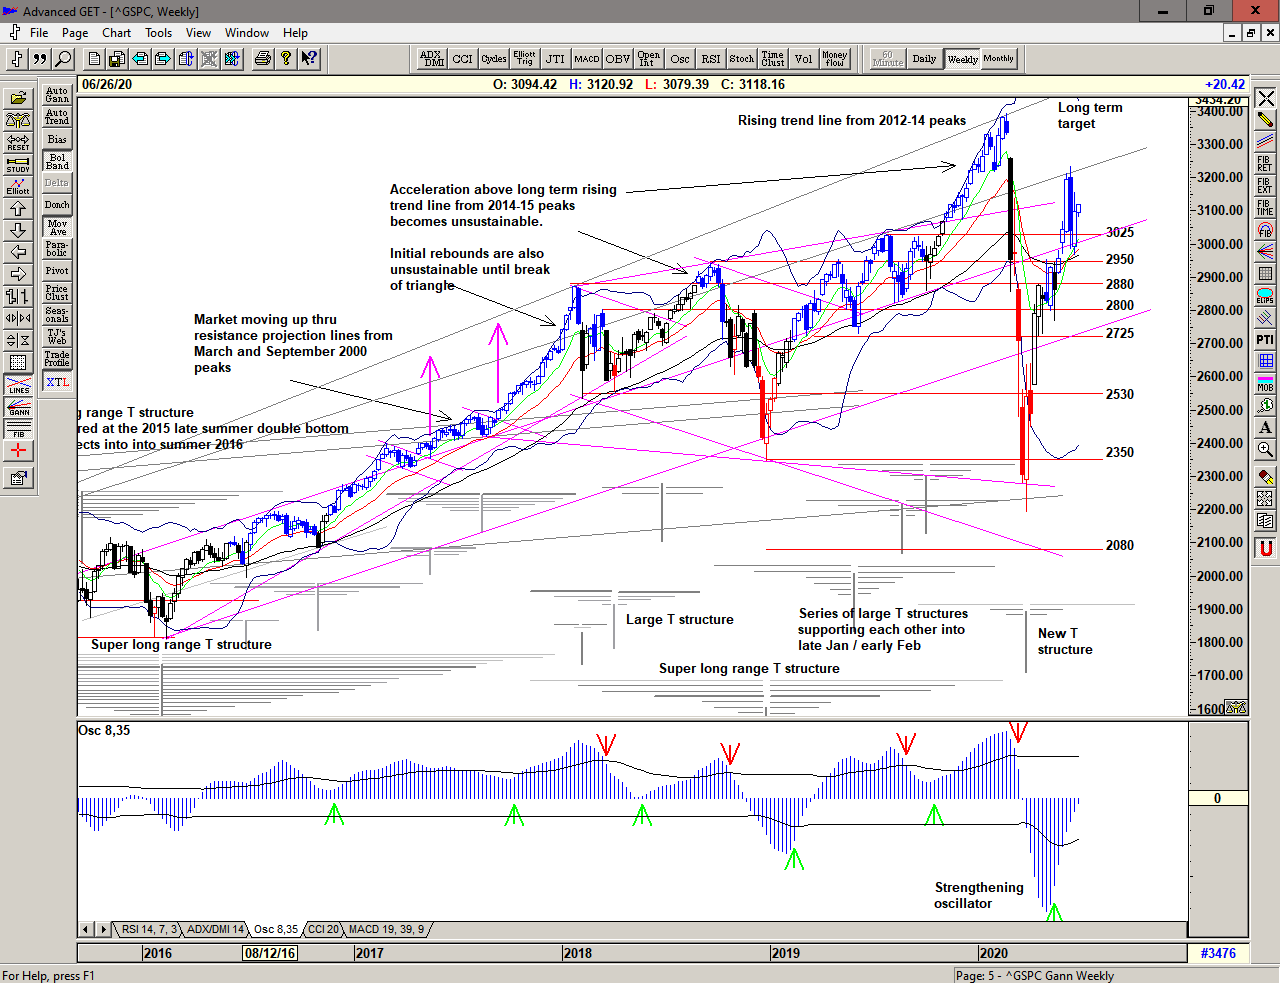 Weekly Chart of S&P 500 for 23 June 2020